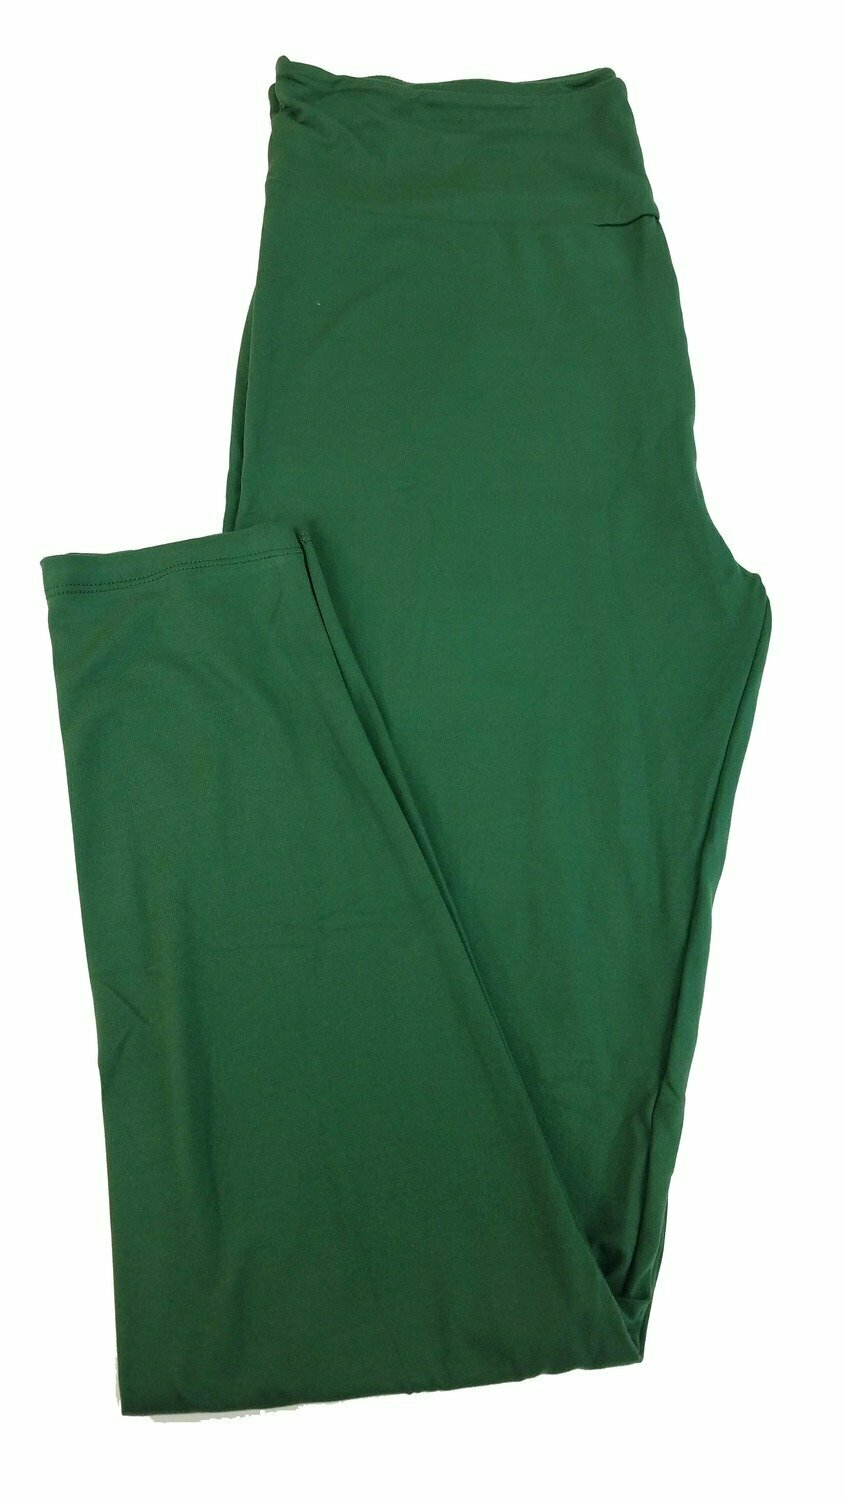 Tall Curvy 2 (TC2) Solids Hunter Green LuLaRoe Leggings fits Sizes 18+